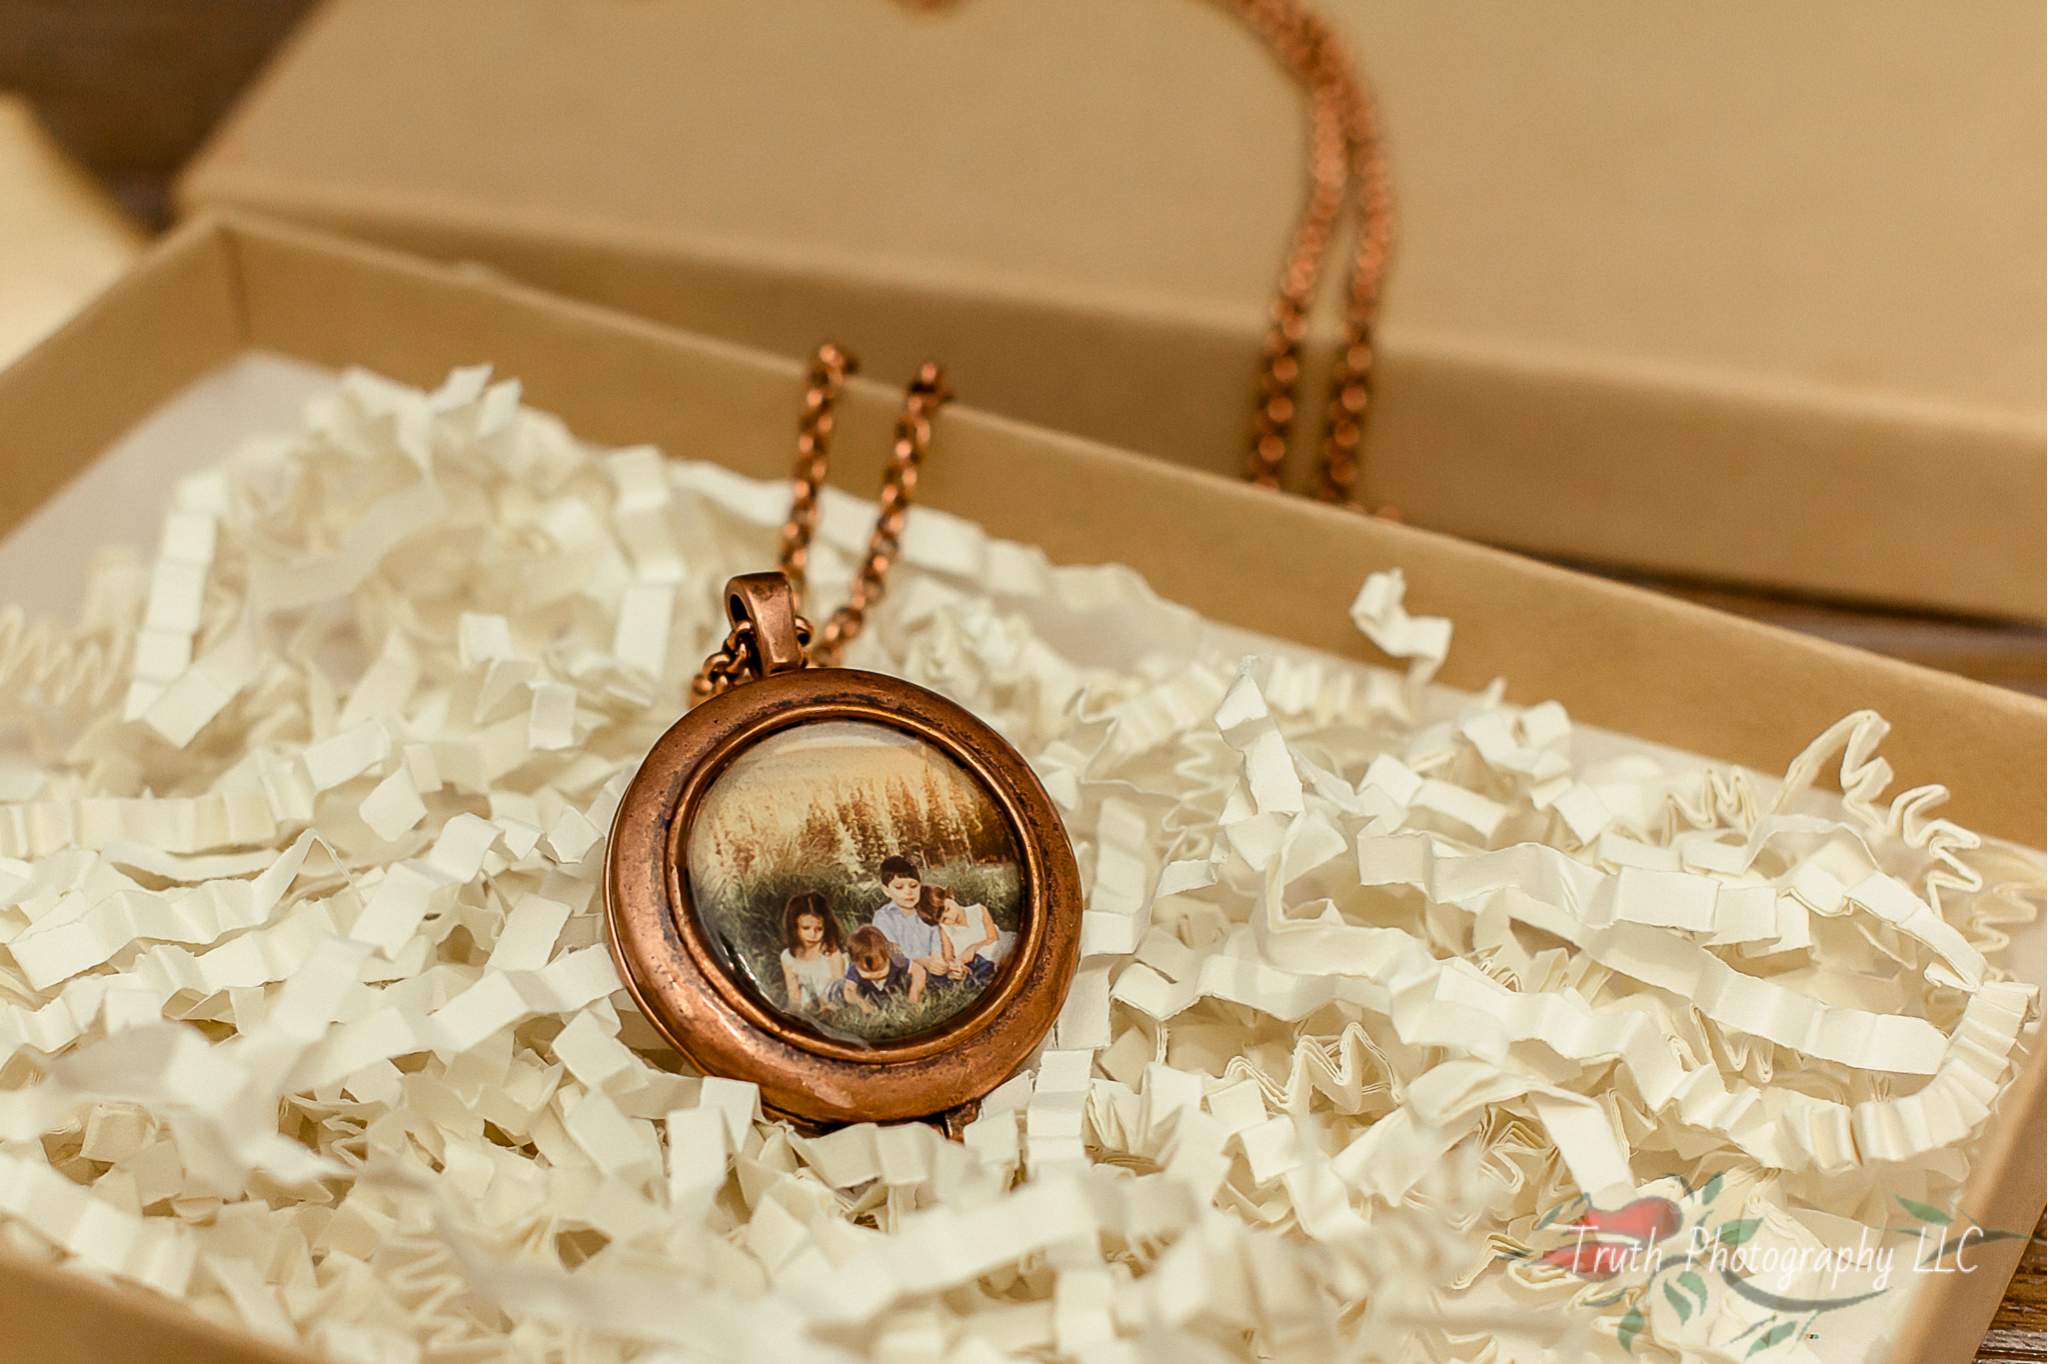 #3 Legacy photo locket - On Sale in April 2019!!! - I love the Legacy photo lockets and this month they are my product special for my insider's club members. Want to get yours on sale? If you are not a member you just need to join at bit.ly/TruthPhotoInsidersWhy do I love these so much? I love that they are a classic photo locket with a twist. They include one permanent photo on the front and two that can be changed on the inside. I love the photo on the front because unlike a traditional locket you don't have to open the locket to enjoy a beautiful photo! These are perfect for the mom who is running out of wall space or who you want a more unique gift for!